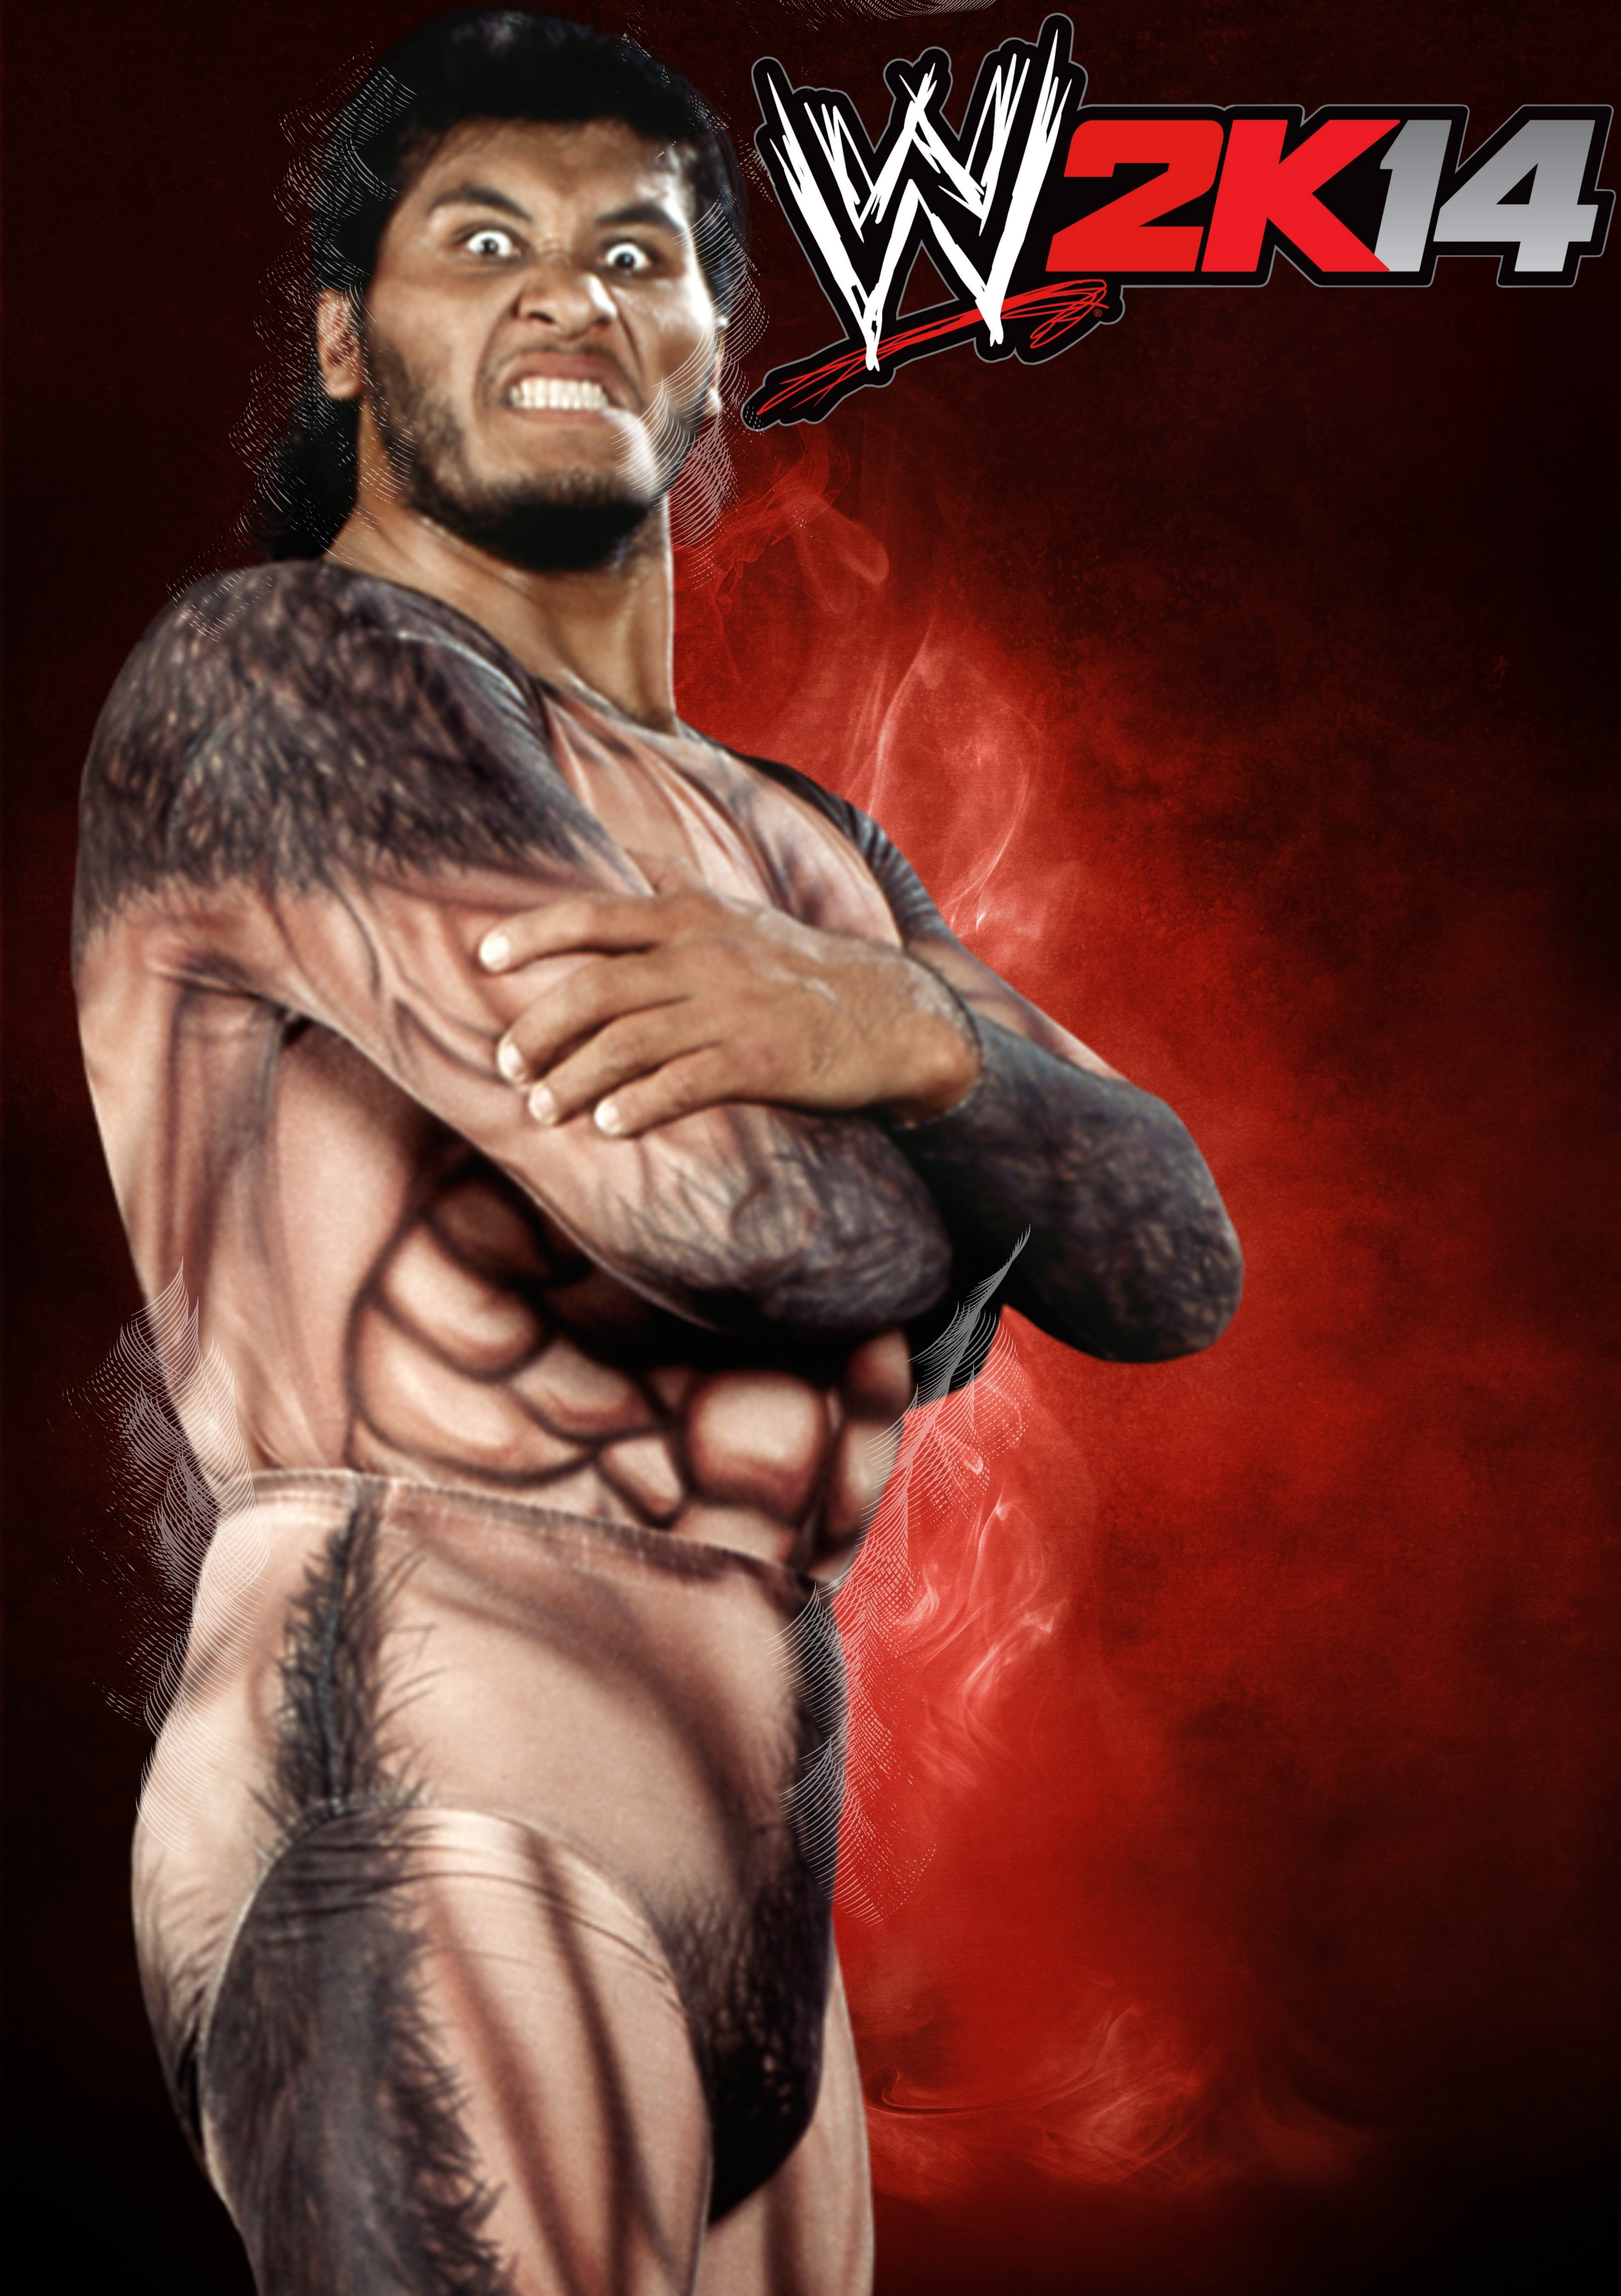 giant gonzalez wwe 2k14 free hd wallpaper